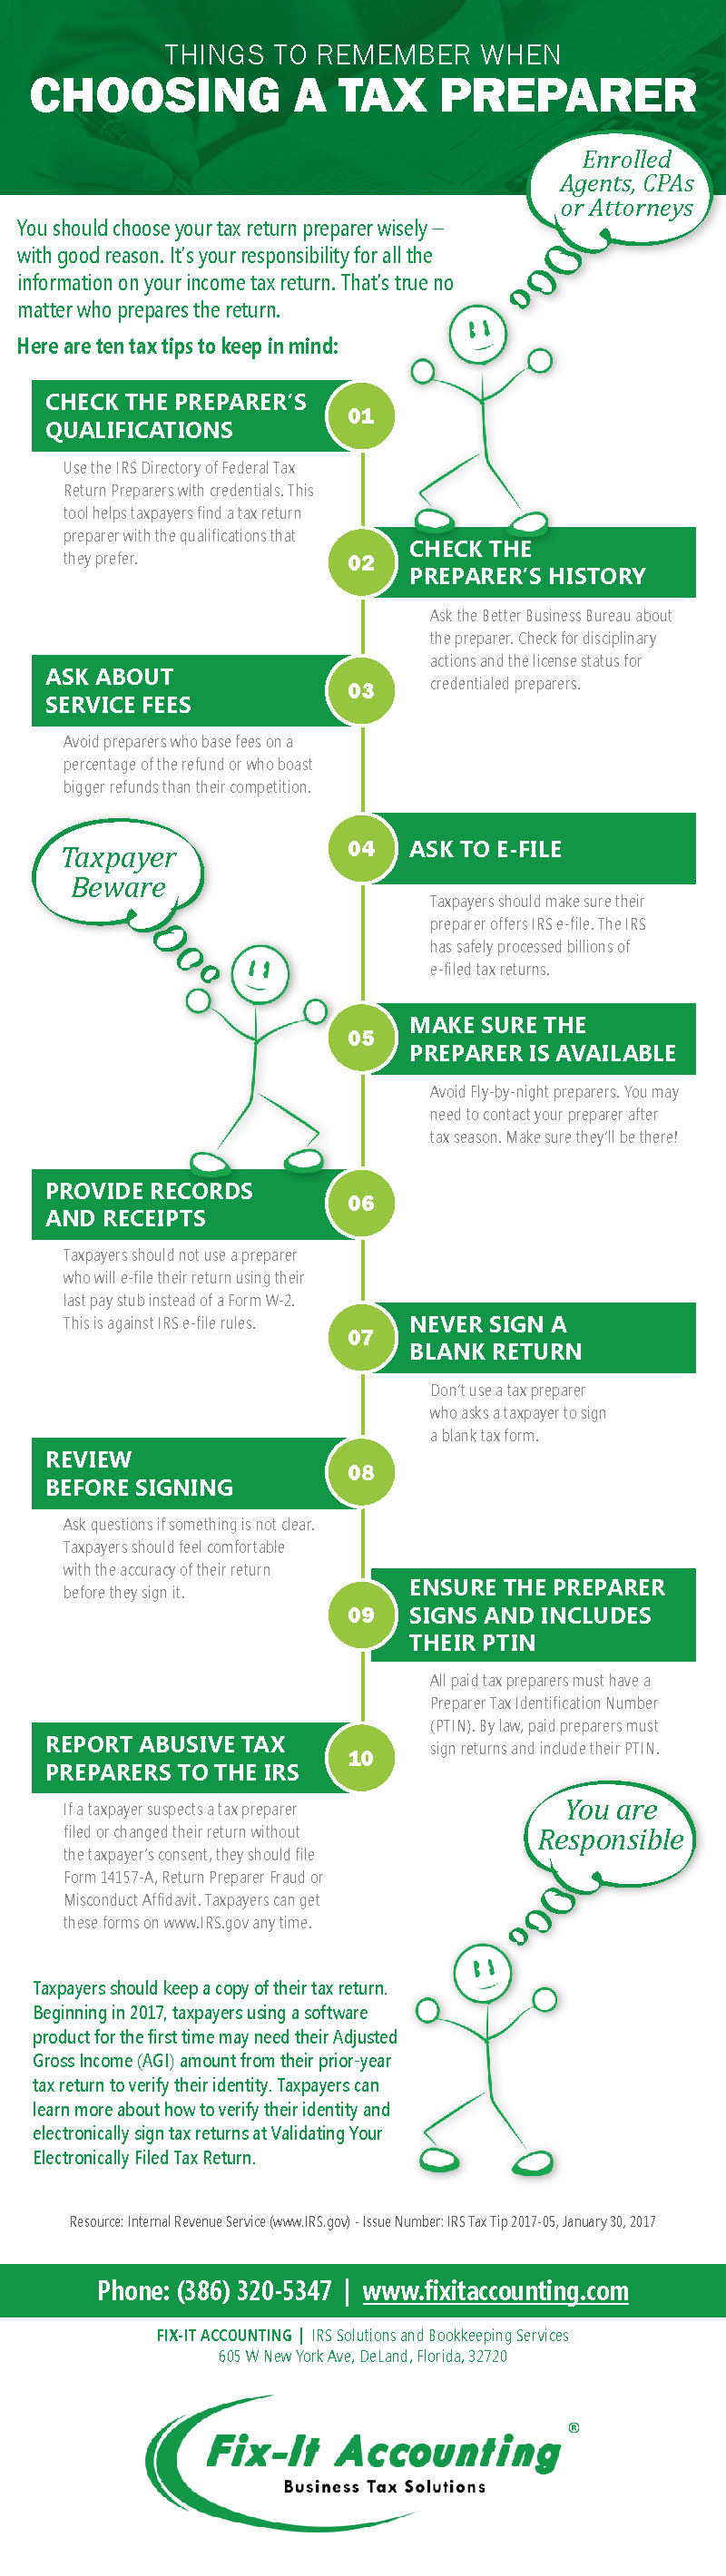 Things to remember when choosing a tax preparer.    Copyright © 2012-2019. Nancy Benet. All Rights Reserved.